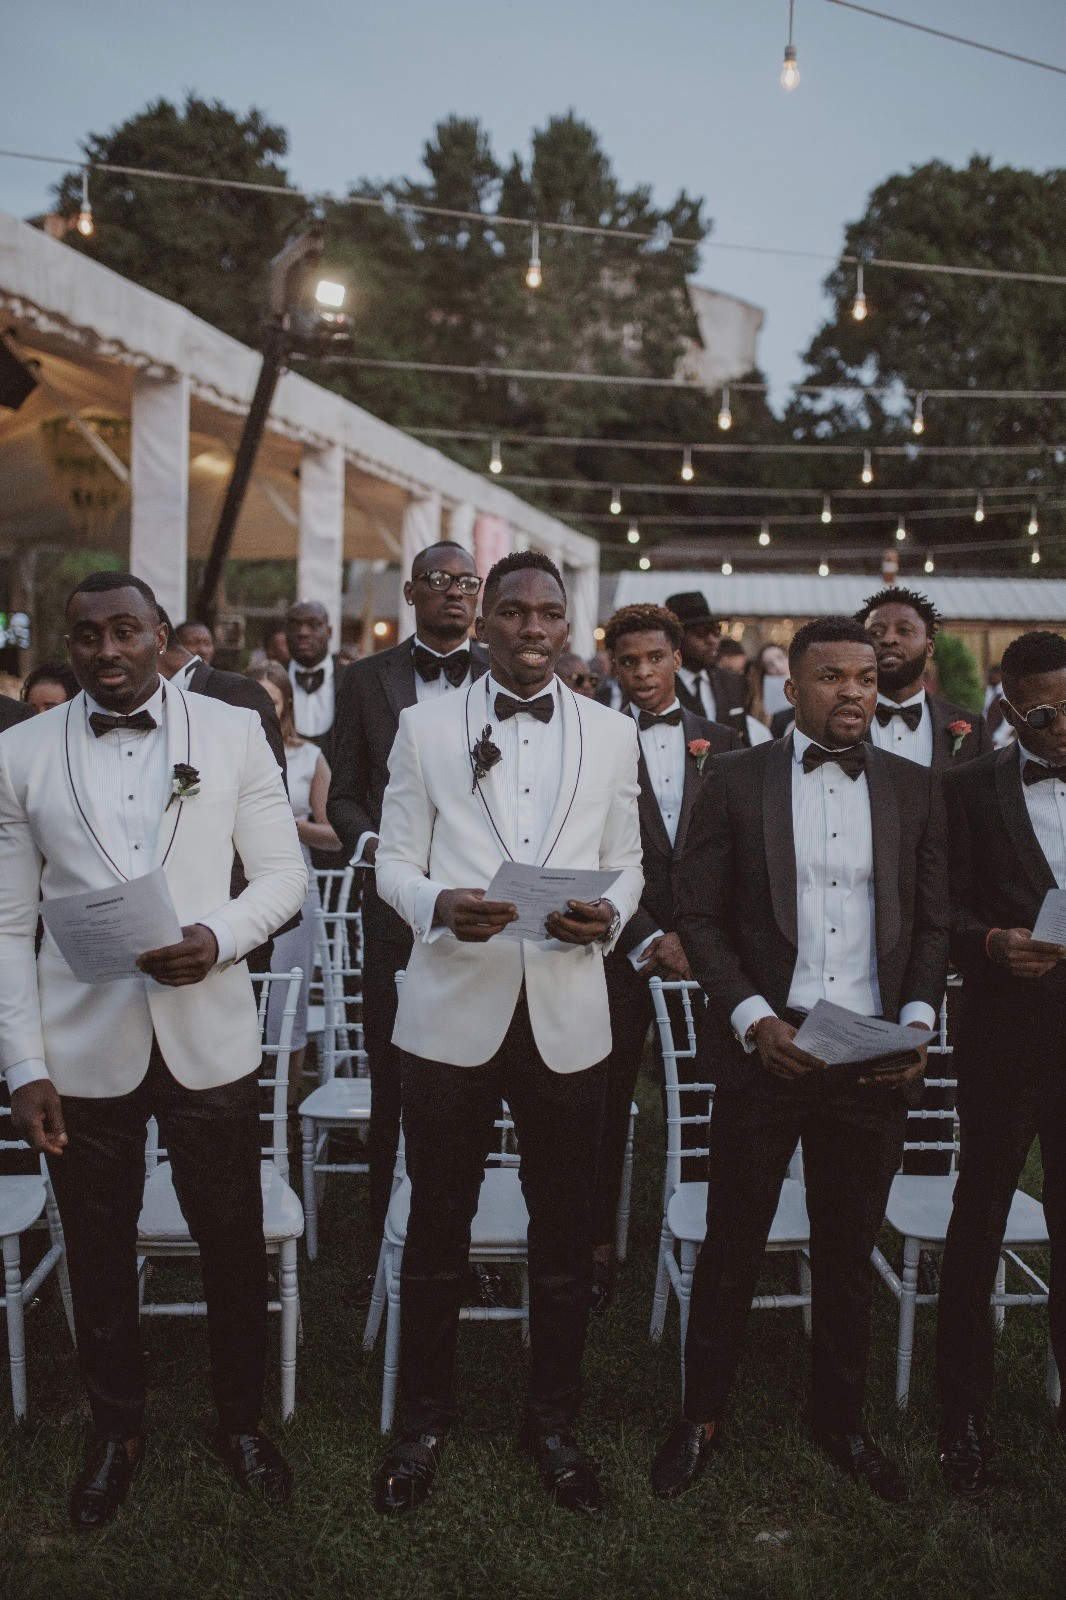 5afbbfa02eed6 - Photos From Kenneth Omeruo's White Wedding In Istanbul, Turkey